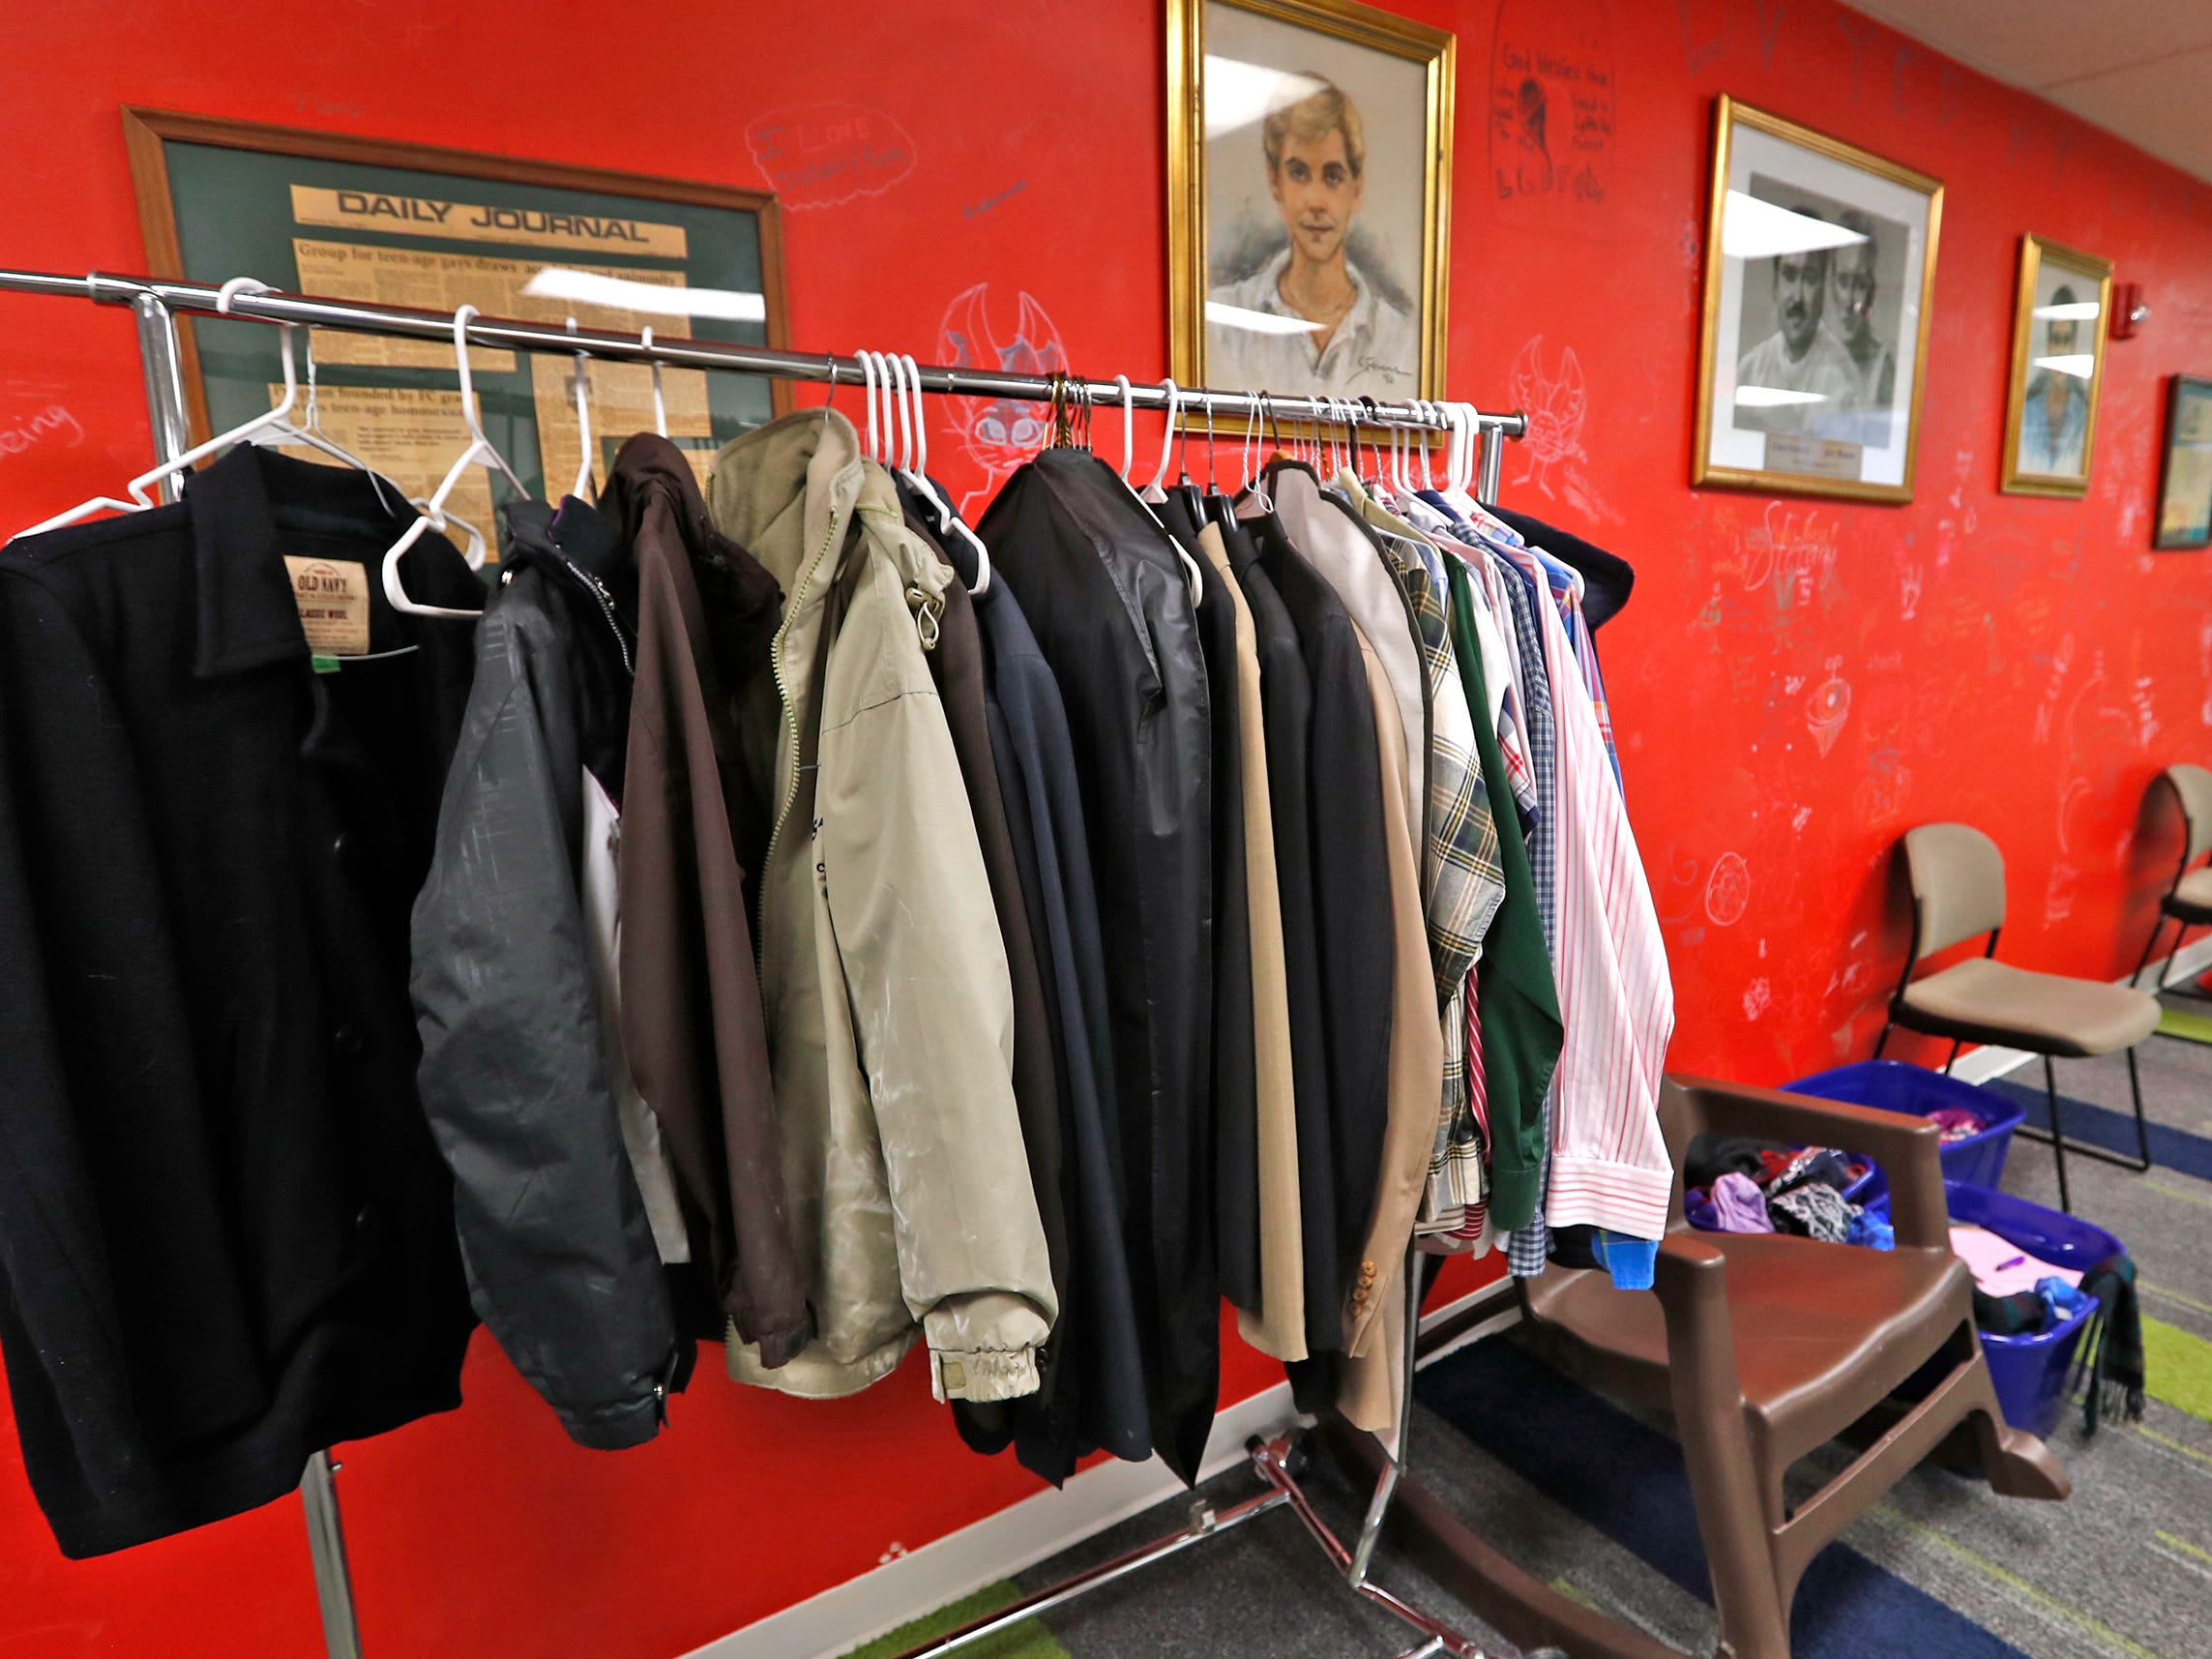 Coats are available for youth at the Indiana Youth Group building, Tuesday, Nov. 27, 2018.  The organization offers a safe drop-in center for LGBTQ+ youth, ages 12-20, and their straight ally friends, in the Indianapolis area.  Activities, tutoring, food and clothes pantries are included in the center.